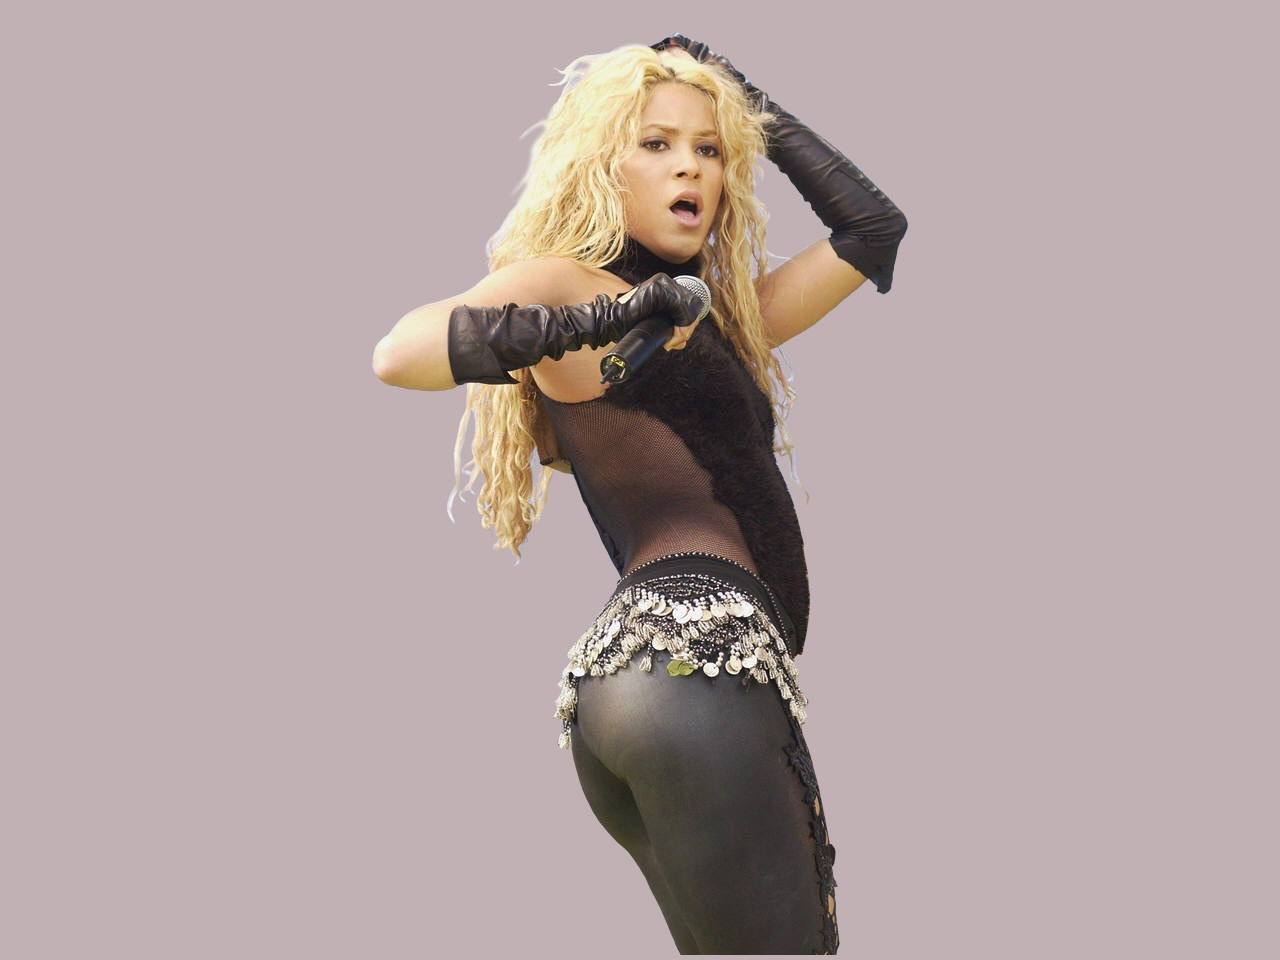 shakira-spicy-stills-in-tights